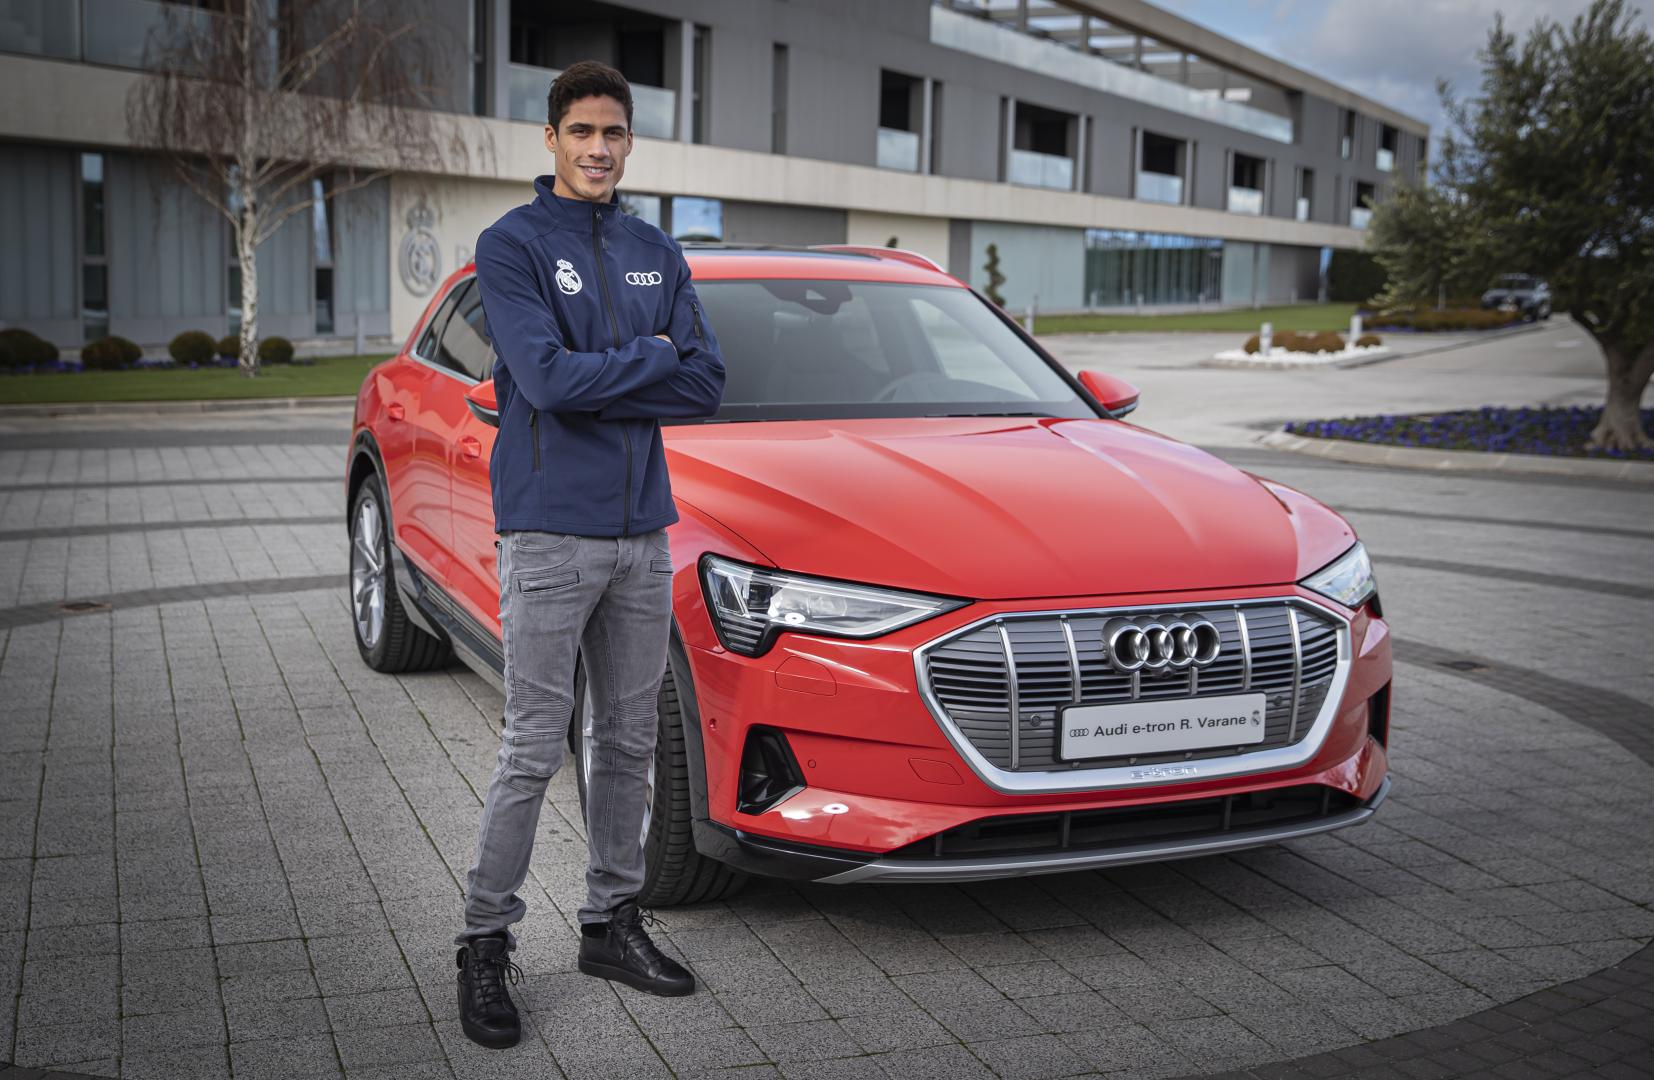 Real Madrid Audi e-tron Varane